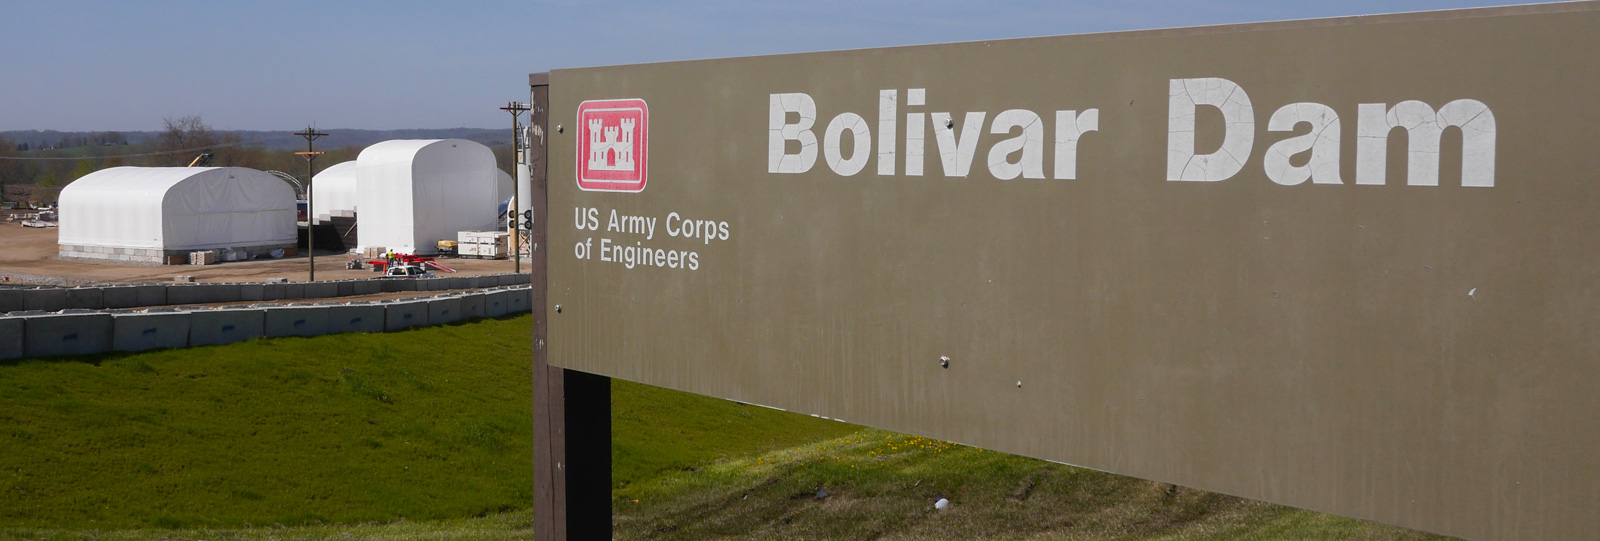 THE U.S. ARMY CORPS OF ENGINEERS, HUNTINGTON DISTRICT, HAS AWARDED TREVIICOS THE CONSTRUCTION OF THE SEEPAGE BARRIER AT BOLIVAR DAM IN OHIO Treviiicos